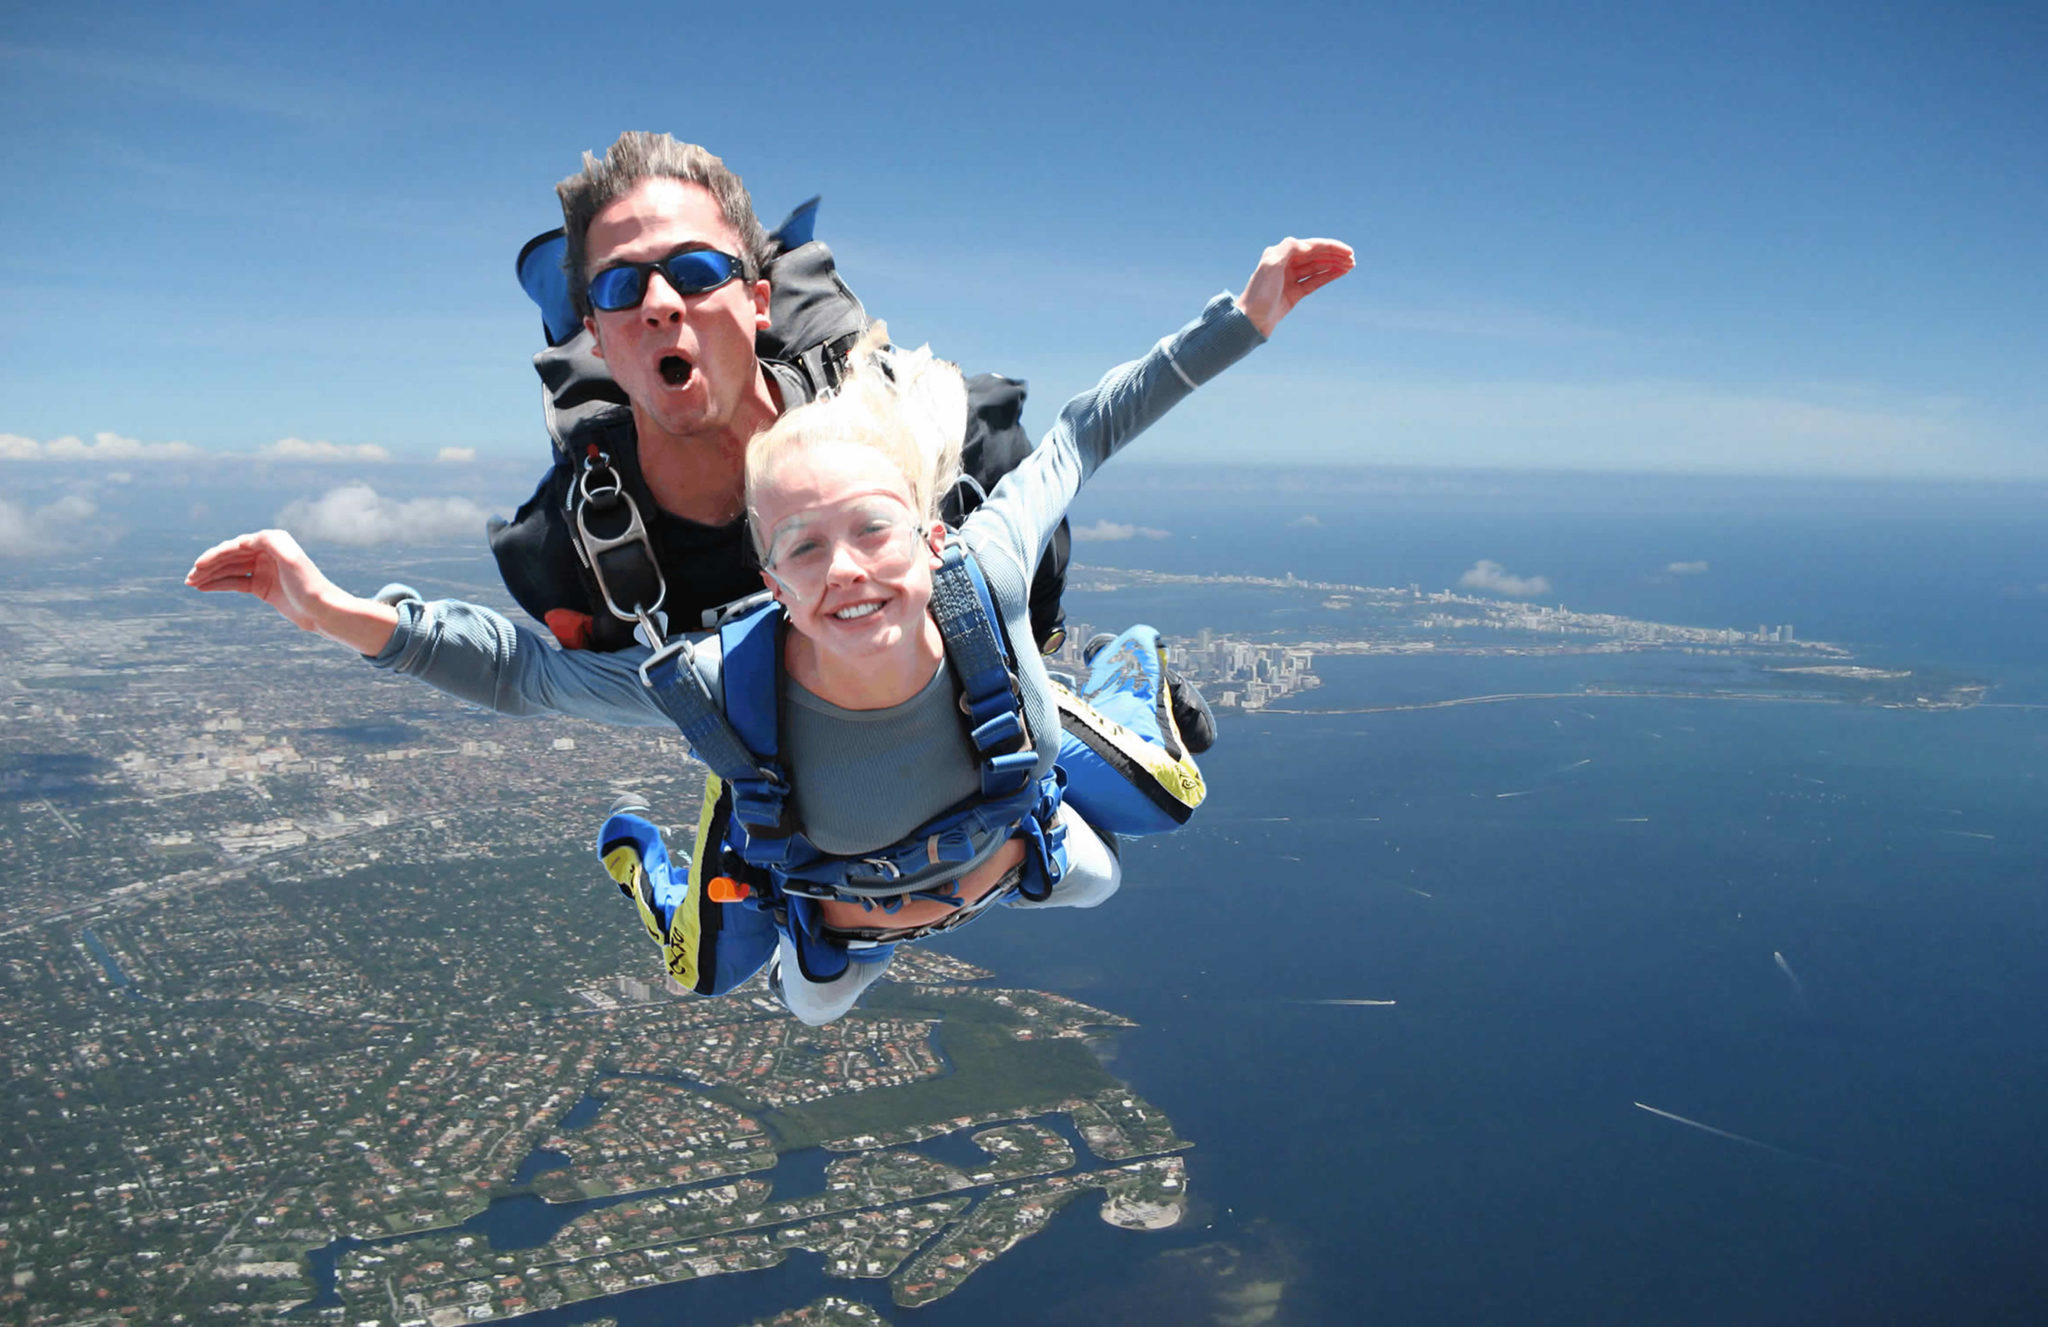 Skydiving May Not Be For Everyone But What a Rush!